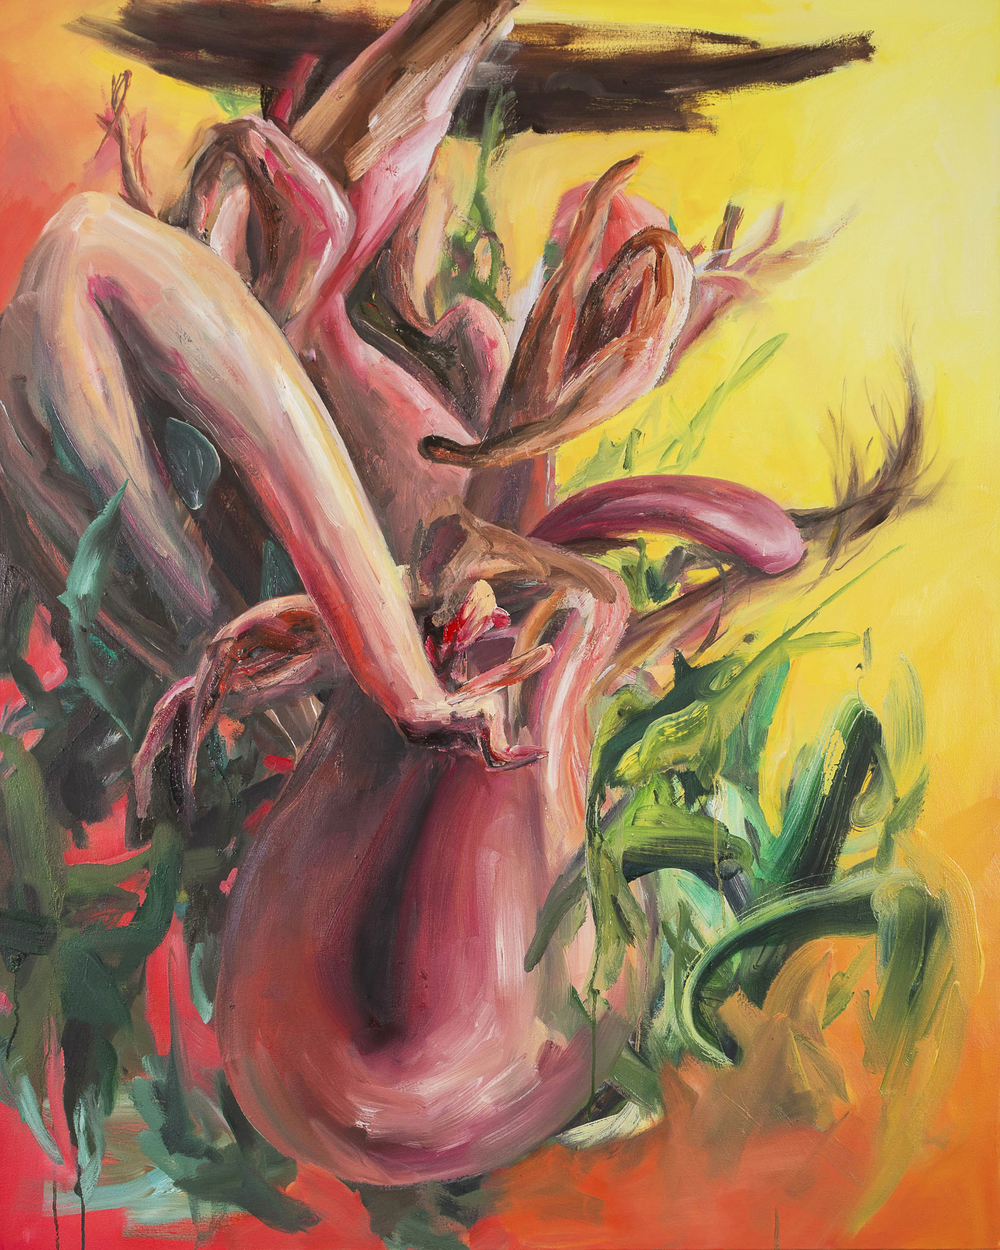 MYSELF AS A BOUQUET (FOR YOU)  45(h) x 36(w) in